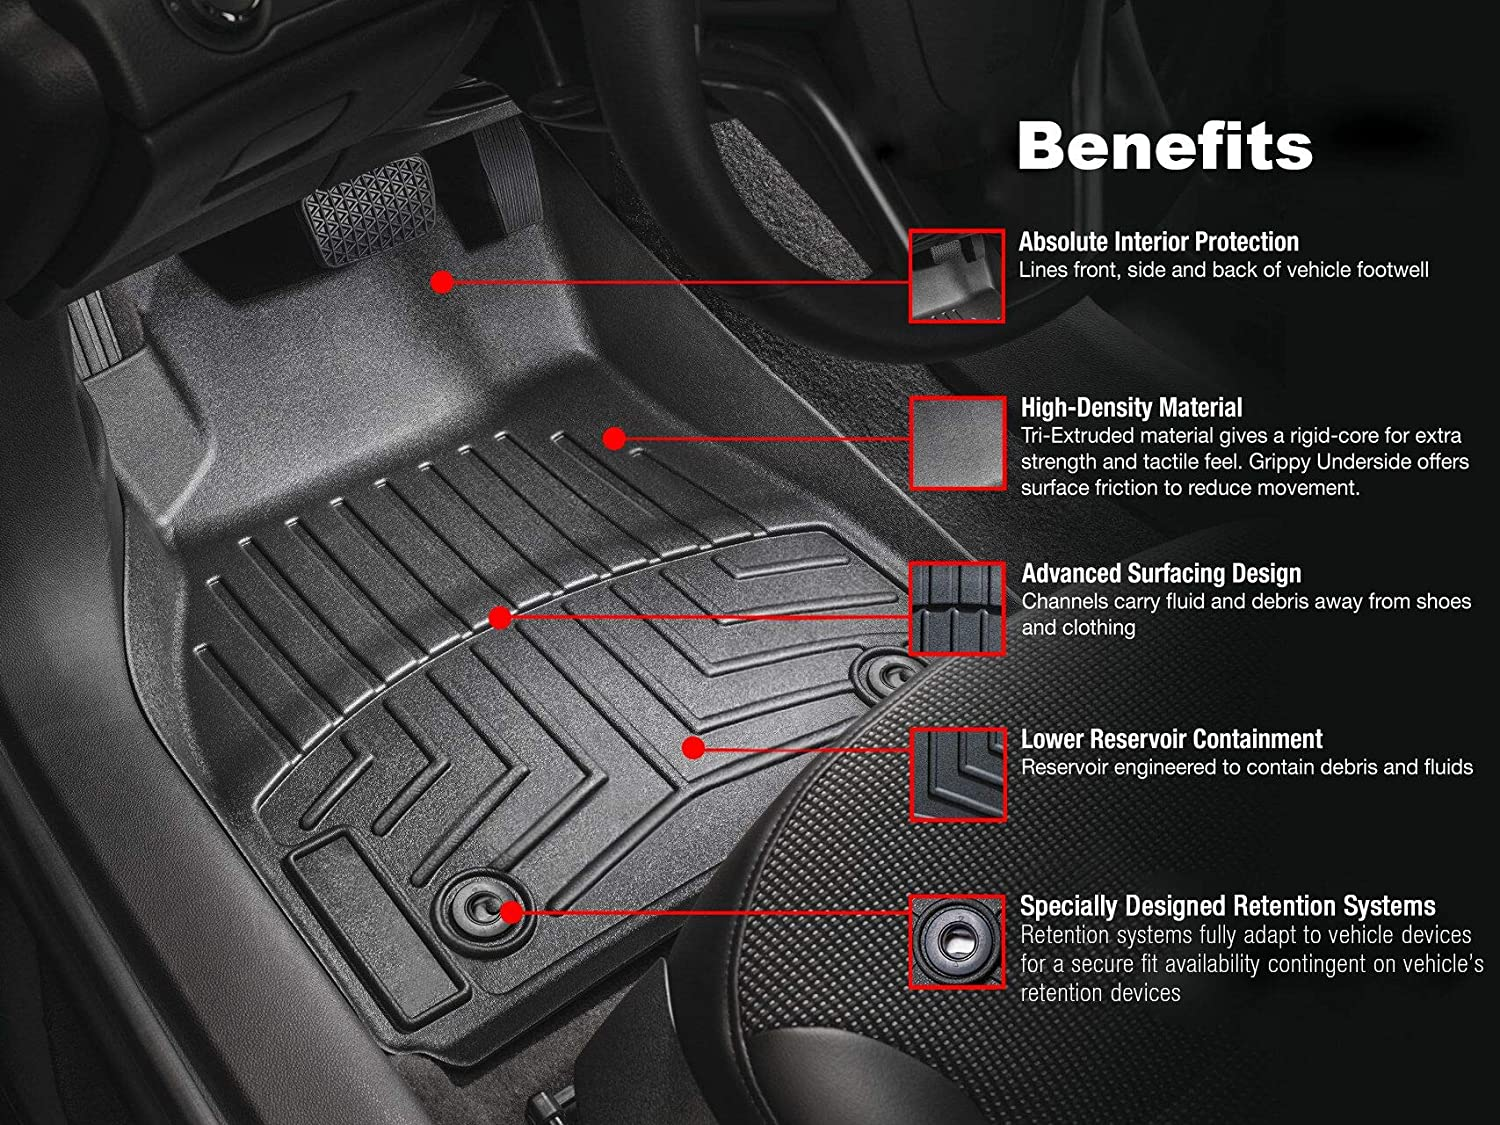 Floor Liner Fit Ford F150 2015-2019,AKM Black Floor Mats Includes 1st and 2nd Row Carpet Floor Bucket(Updated version) fit Supercrew Crew Cab